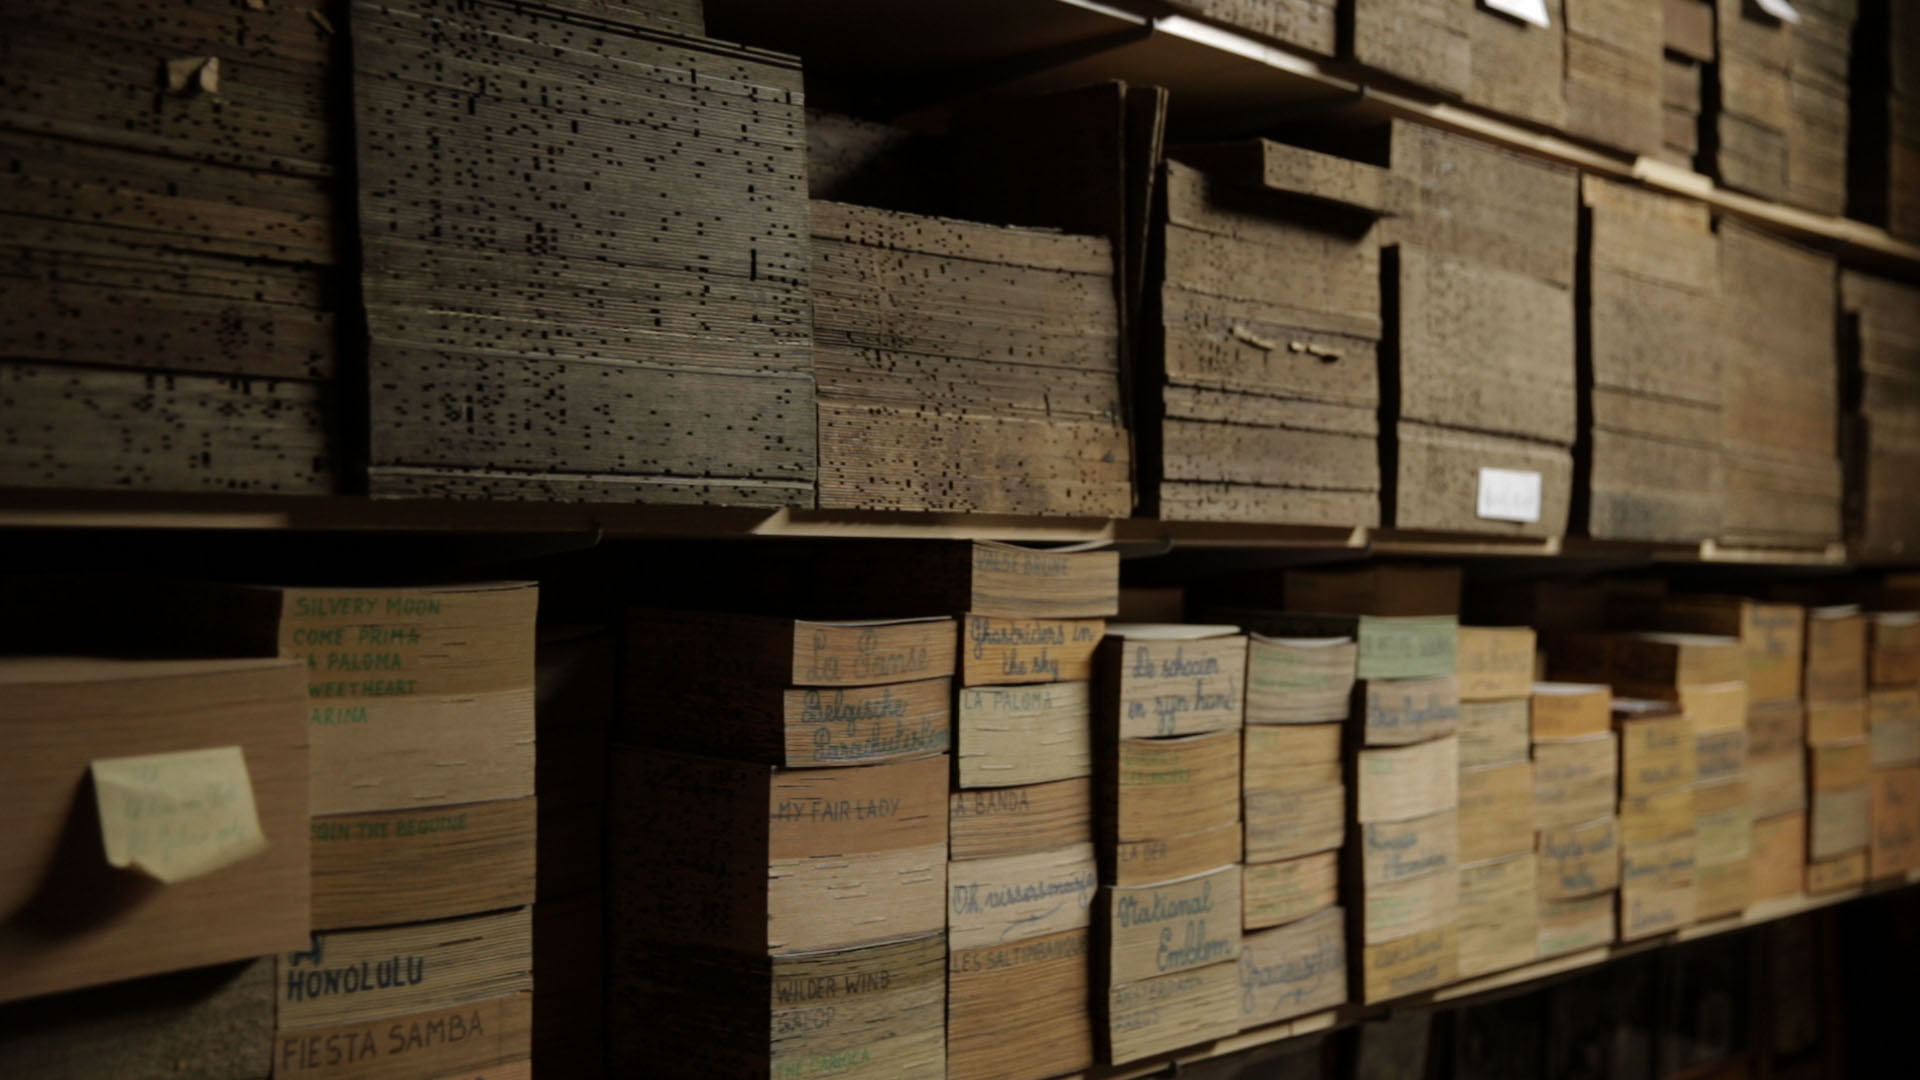 A archive of organ music books